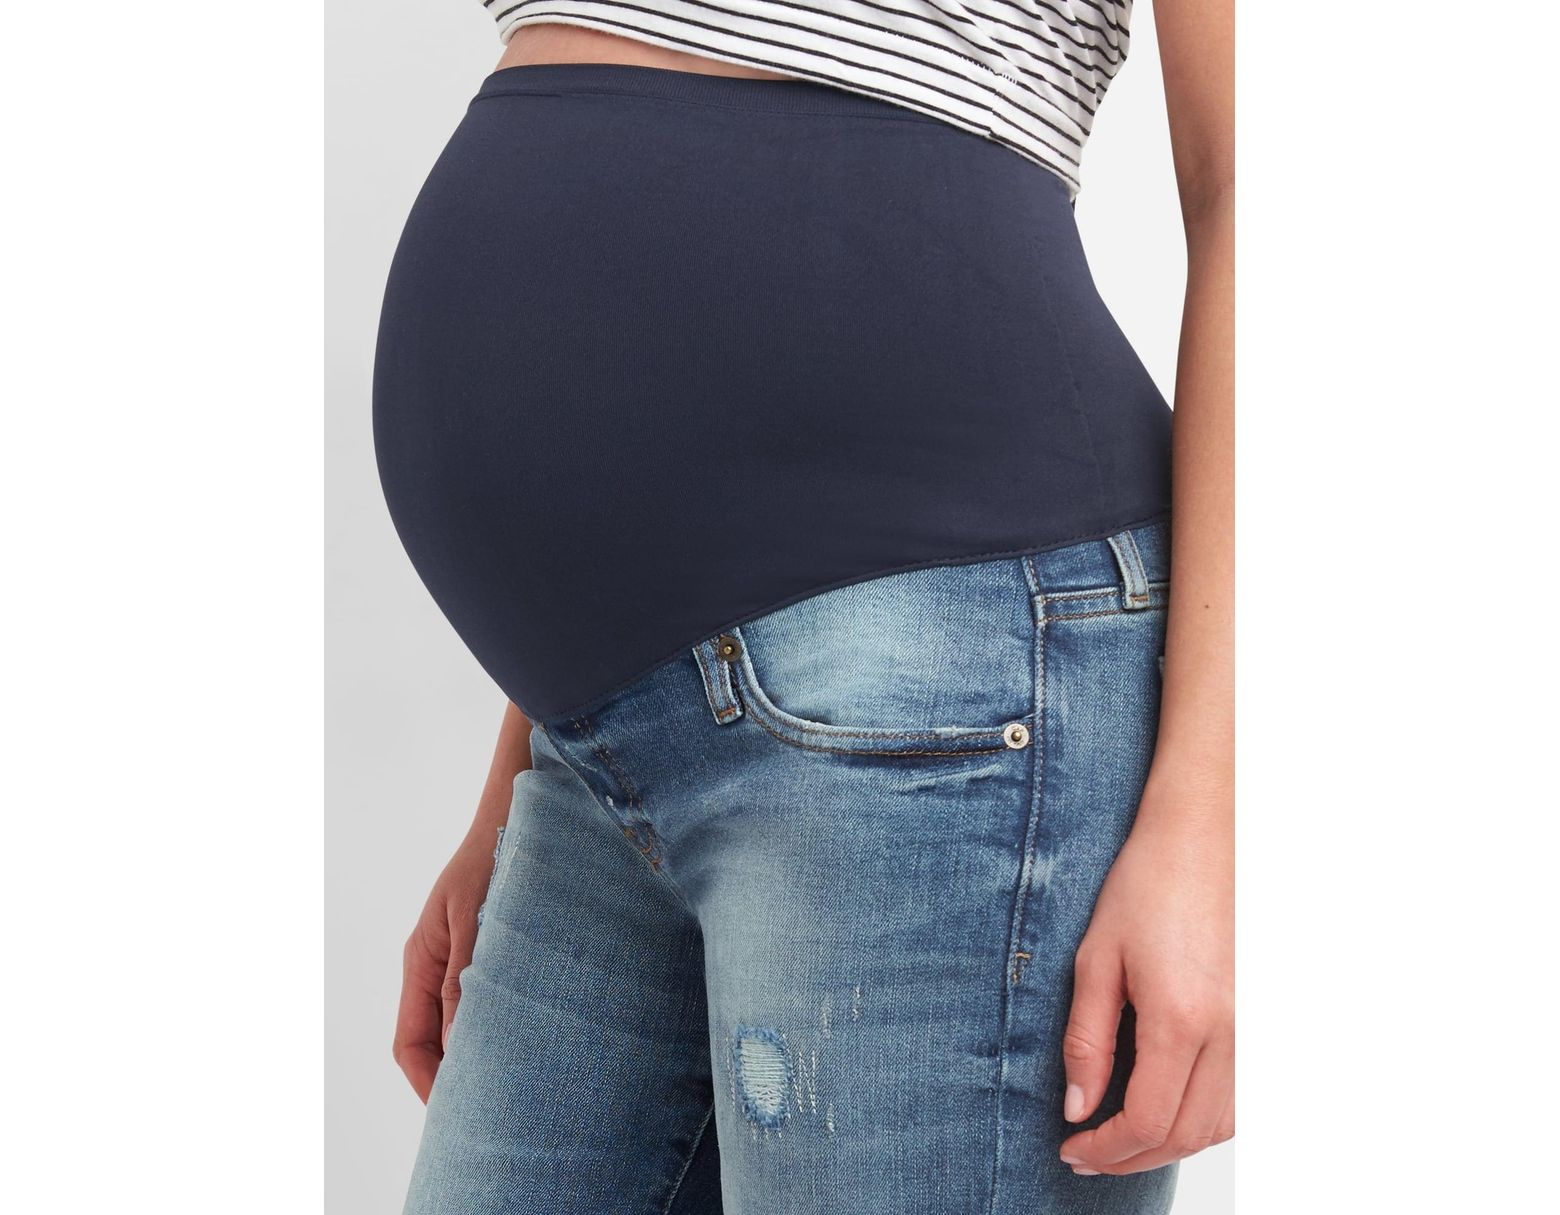 0b70afbed60c8 Lyst - Gap Maternity Full Panel Repaired Best Girlfriend Jeans in Blue